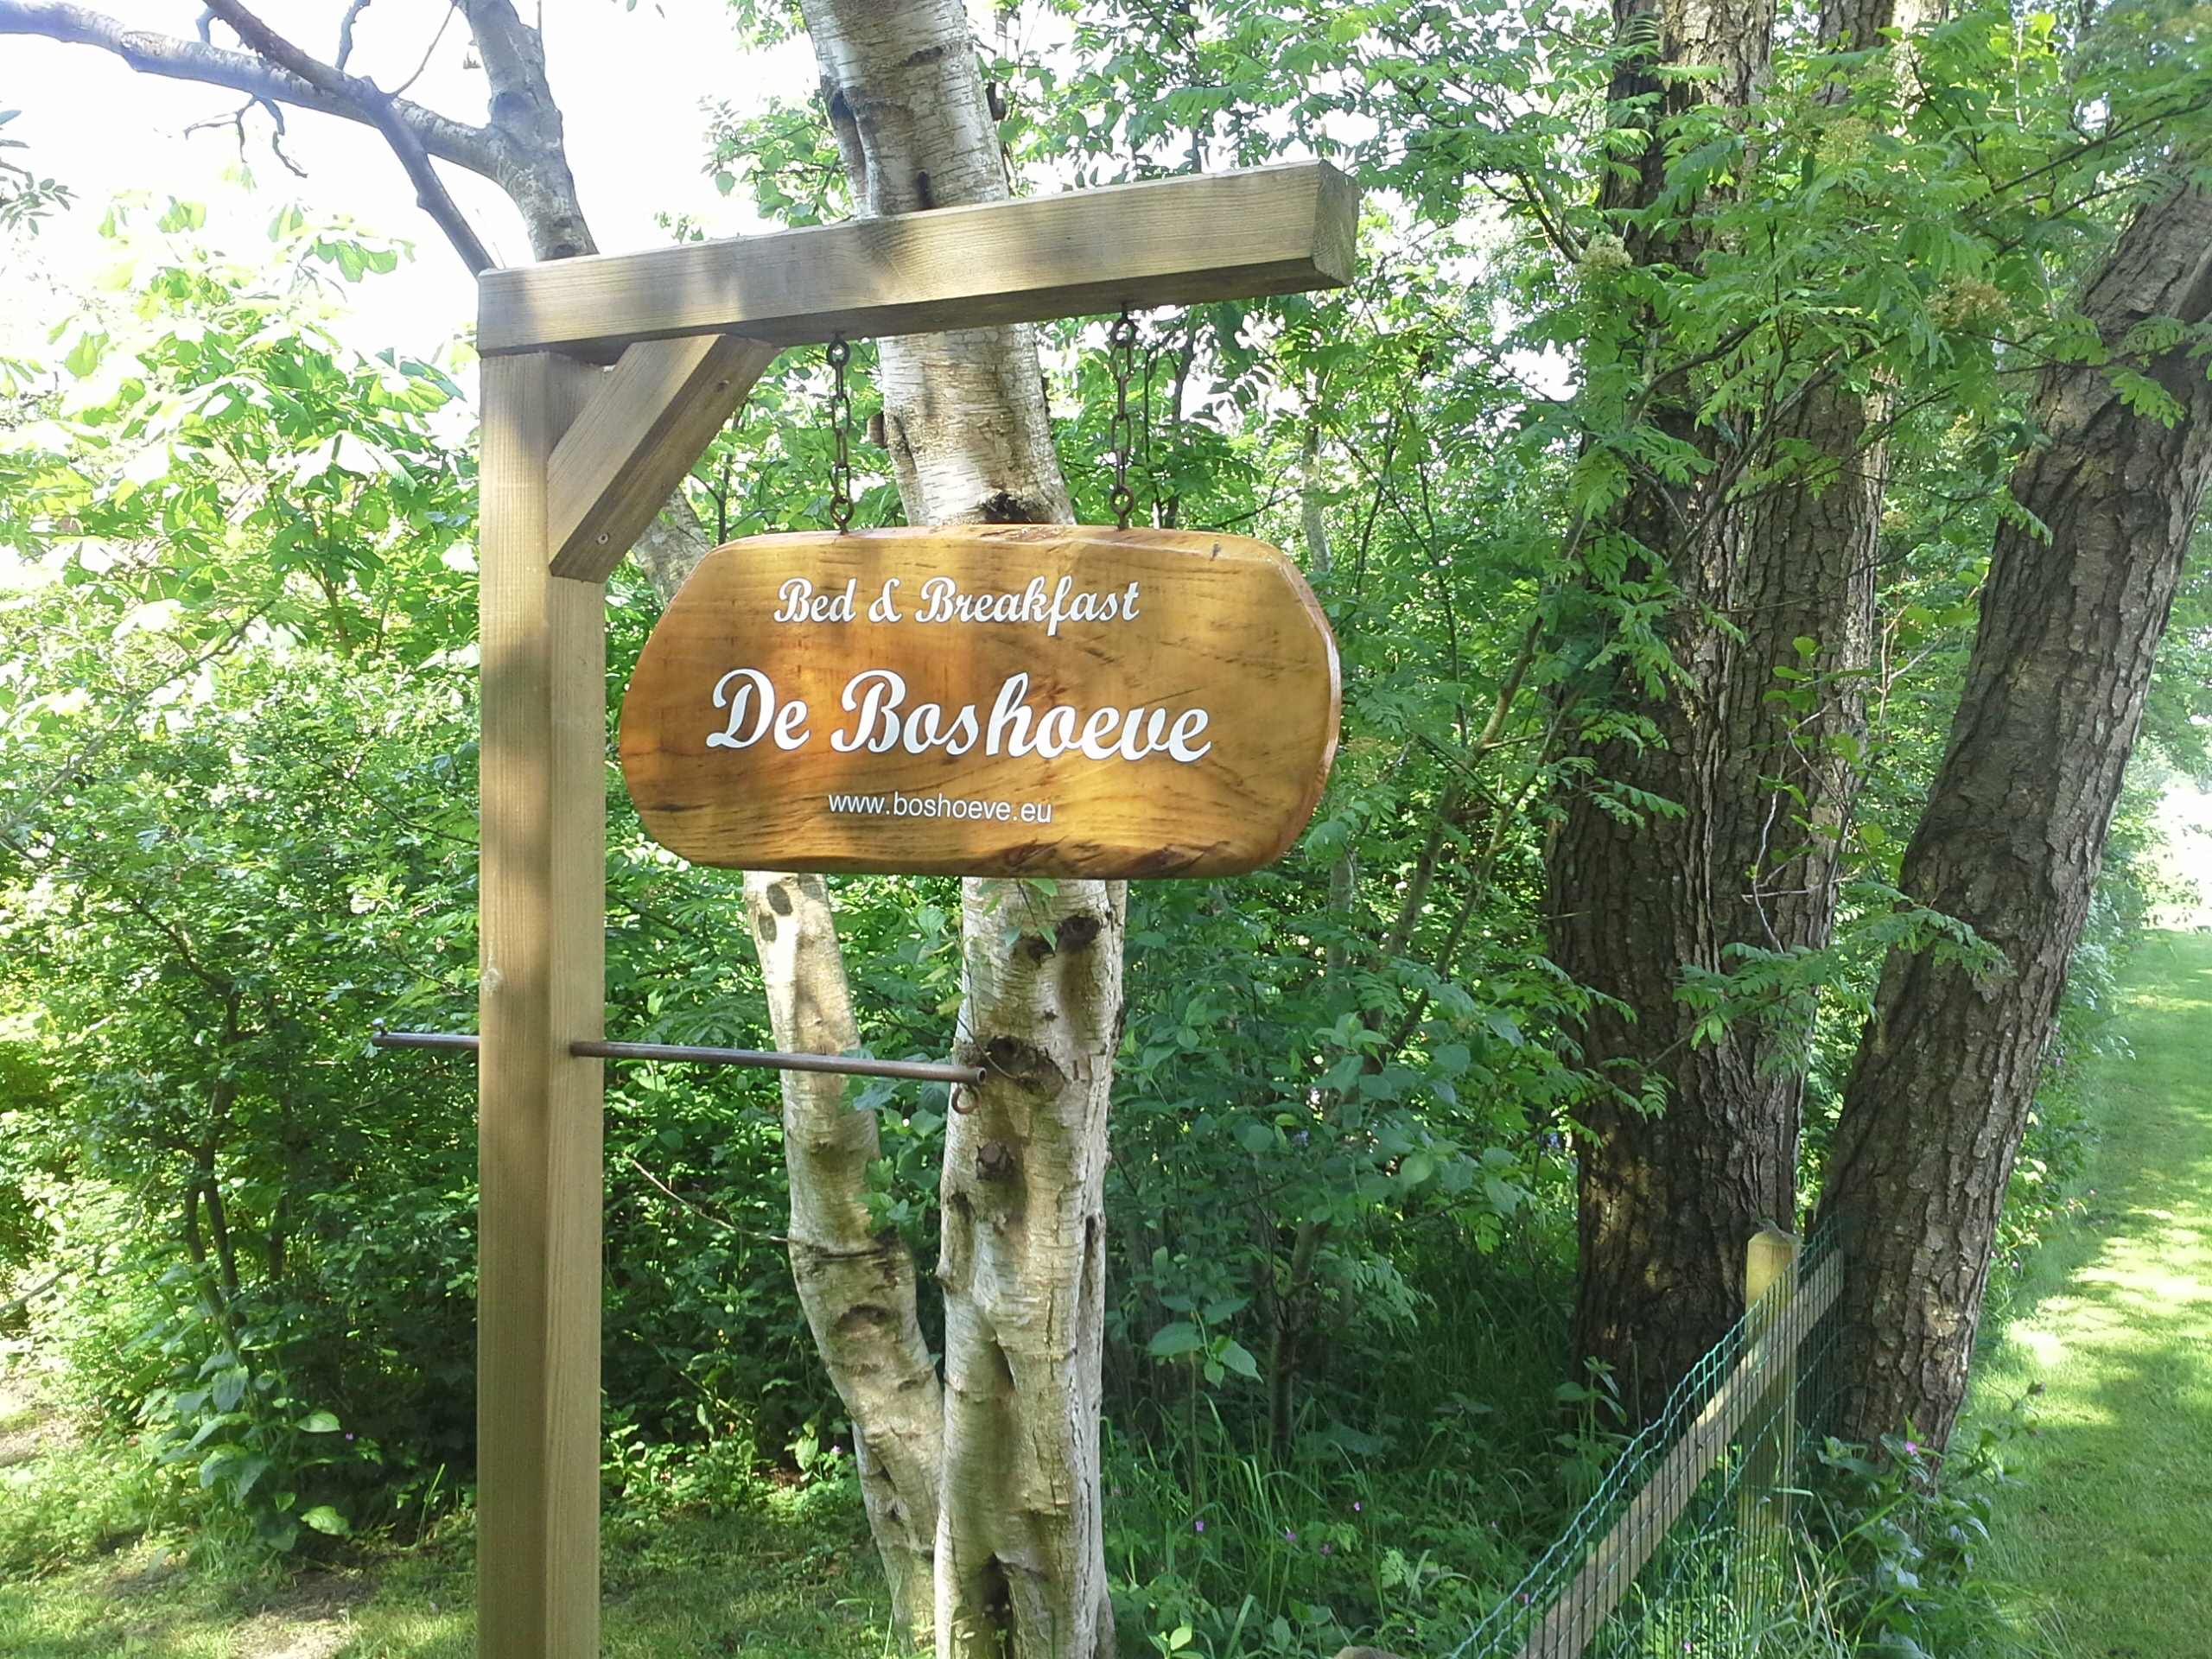 Bed en Breakfast, De Boshoeve